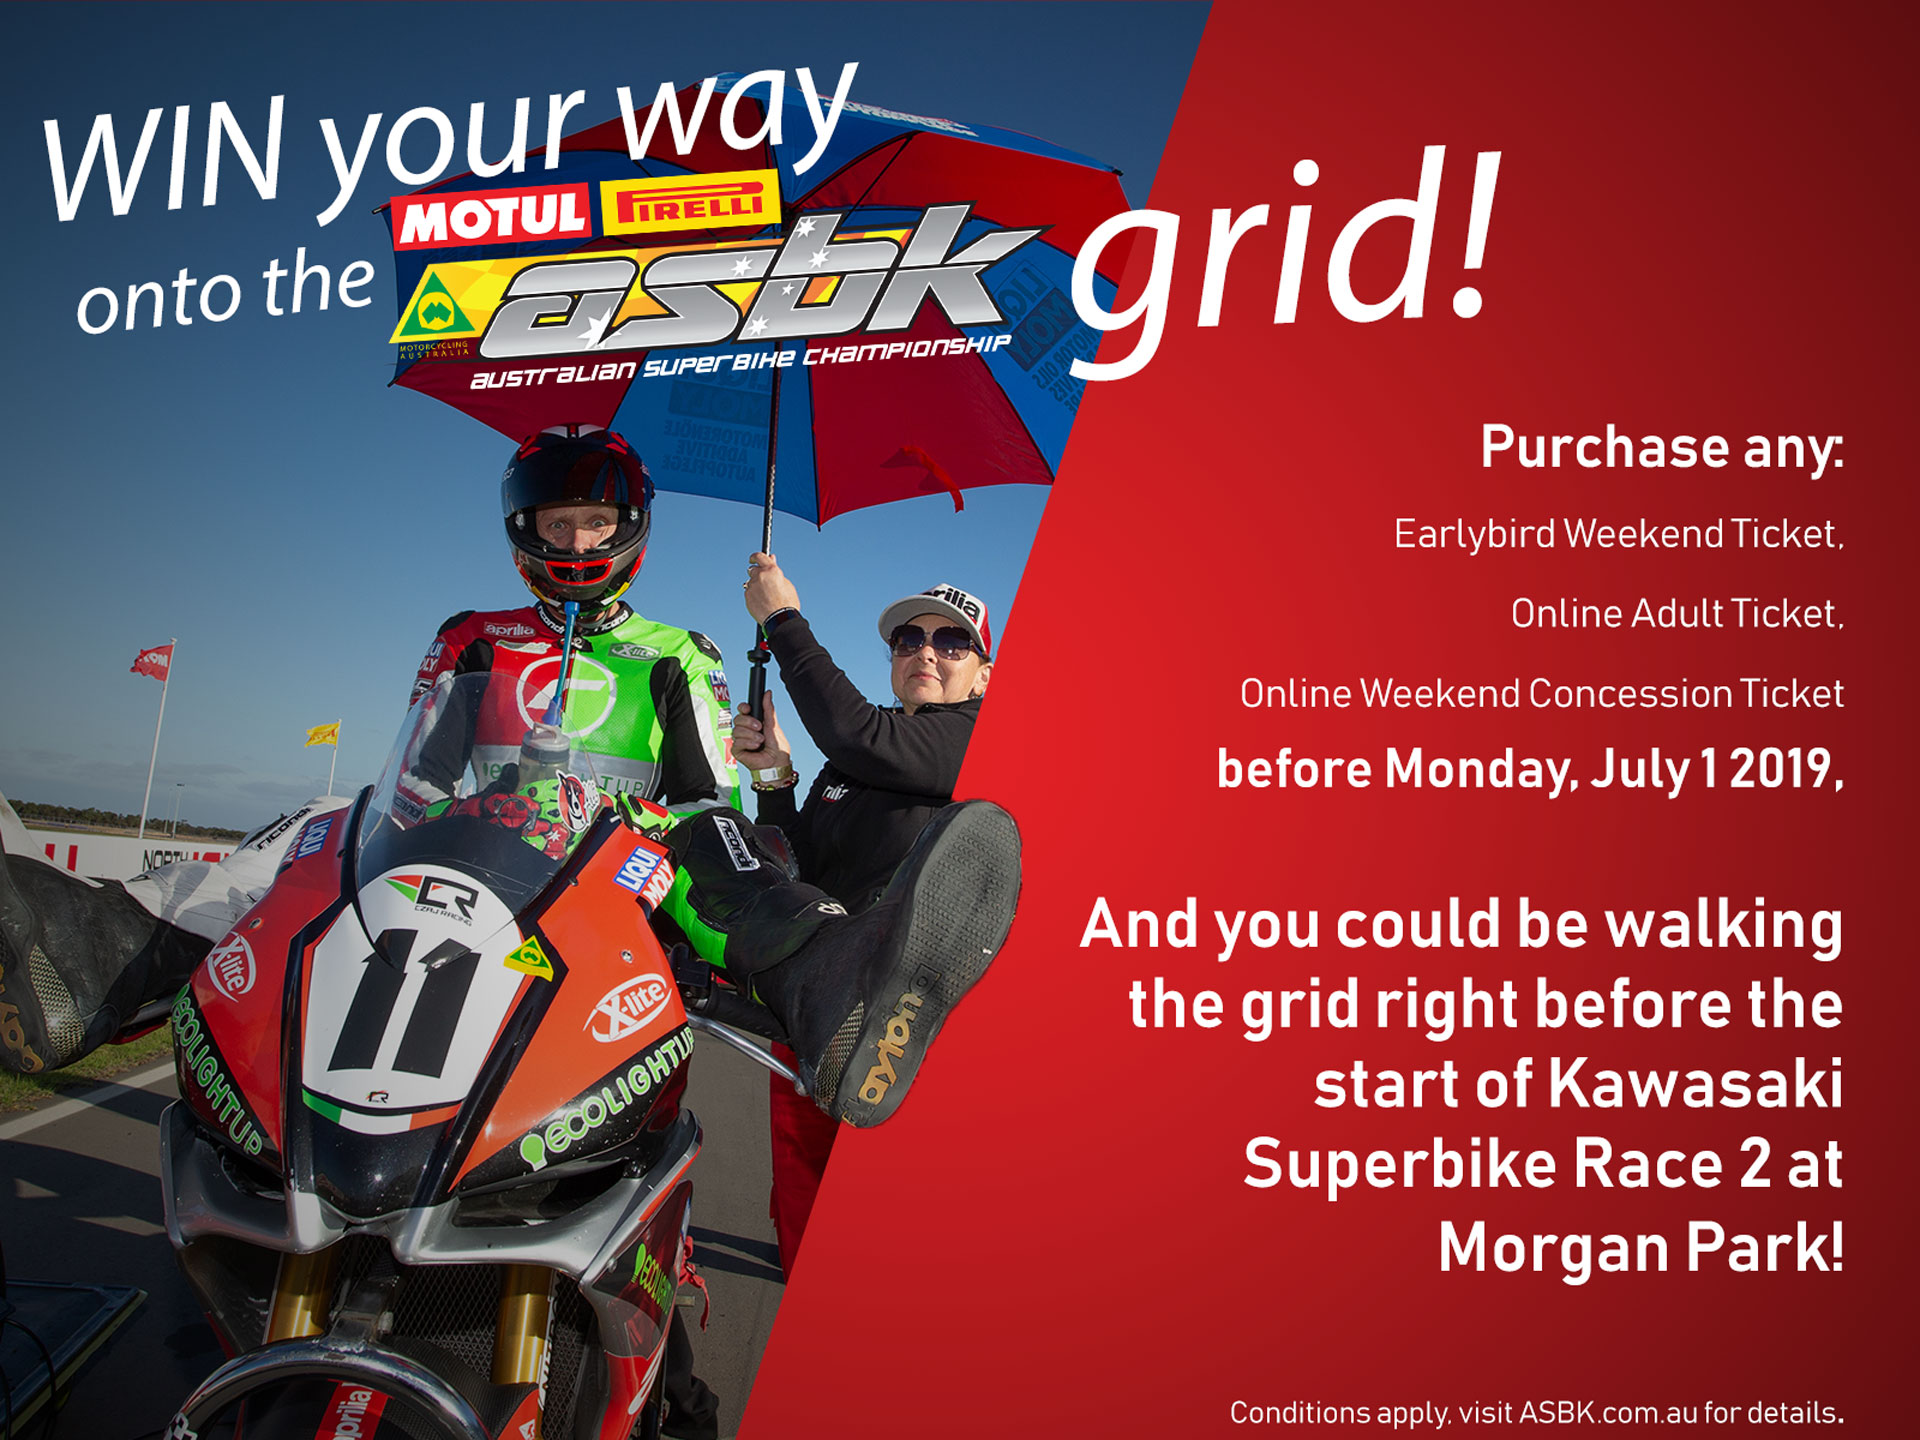 ASBK heads to Morgan Park for Round 4